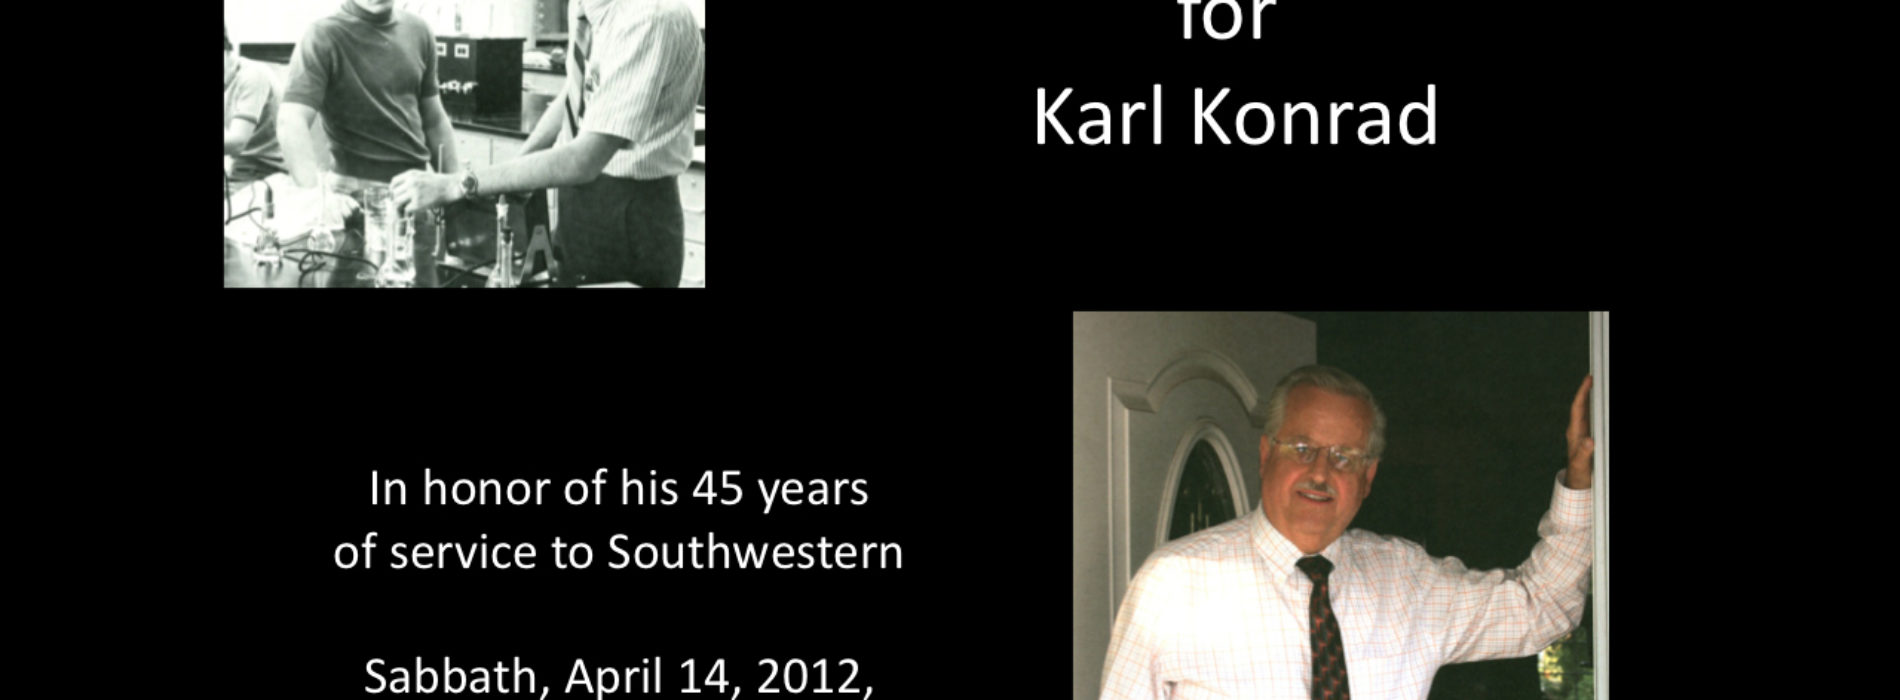 Reception To Honor Karl Konrad